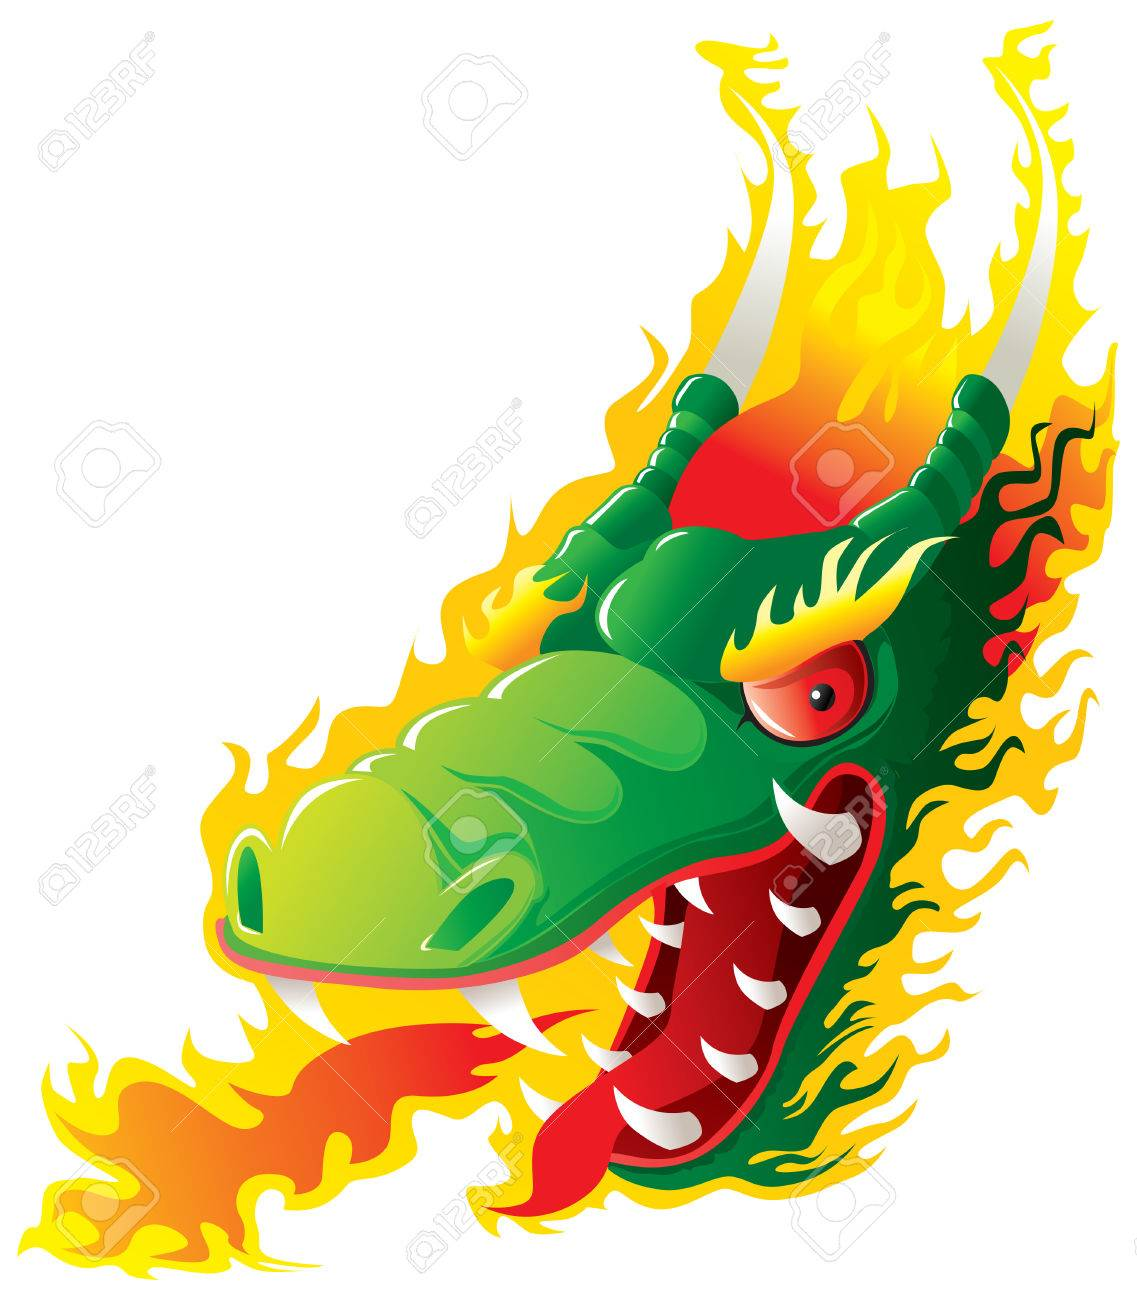 Dragon head on fire. Original   artwork inspired with traditional Chinese and Japanese dragon arts. Stock Vector - 8222351